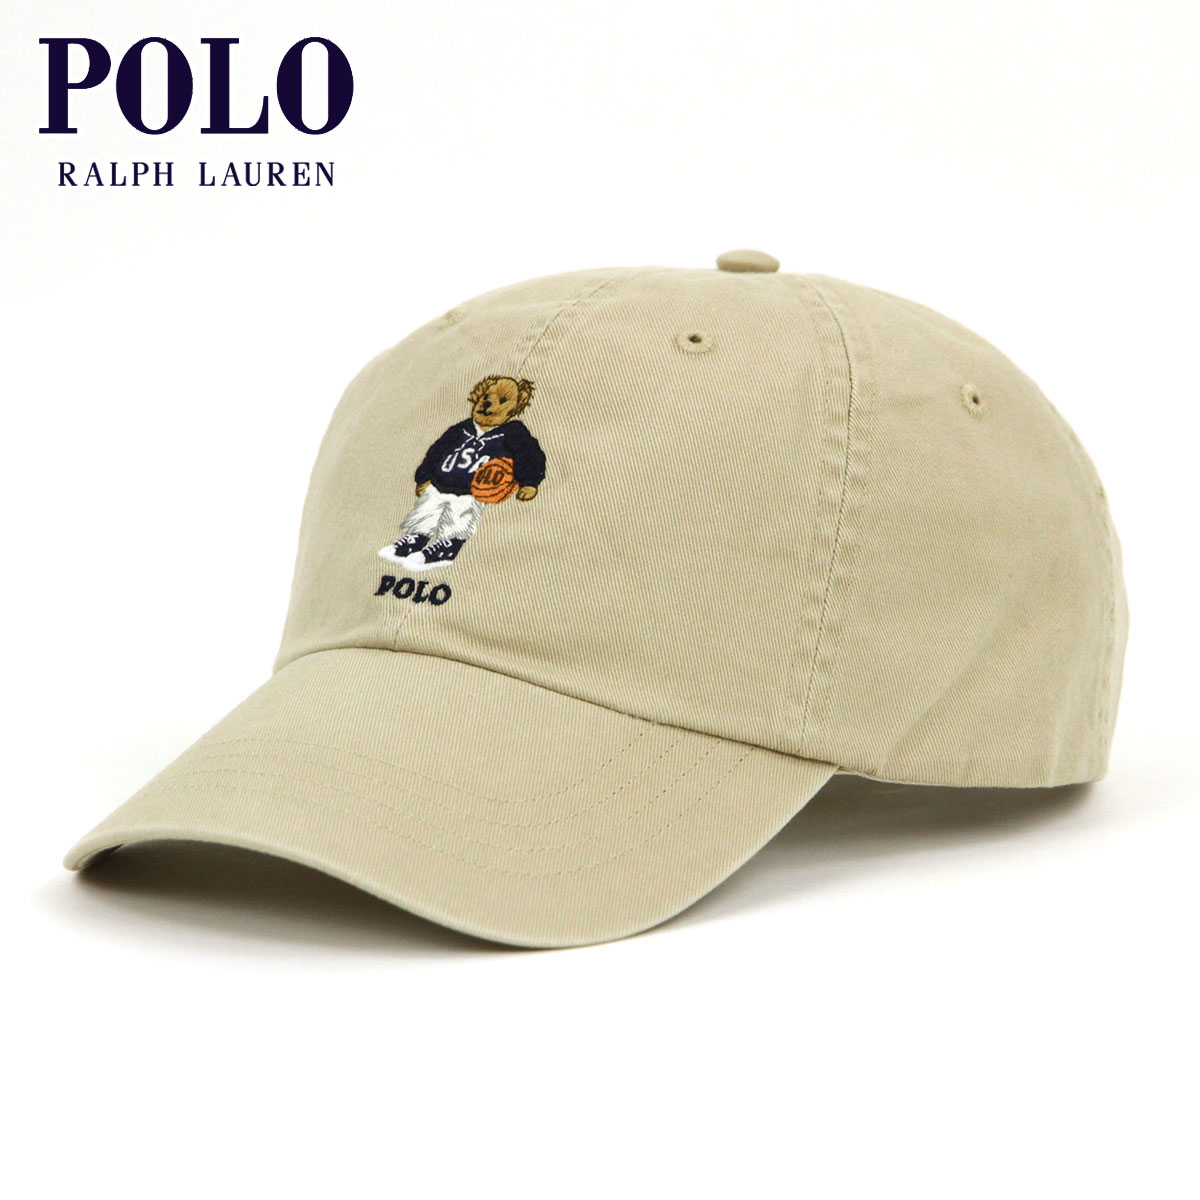 f6e43577330ba Polo Ralph Lauren POLO RALPH LAUREN regular article men cap POLO BEAR HAT  KAHKI